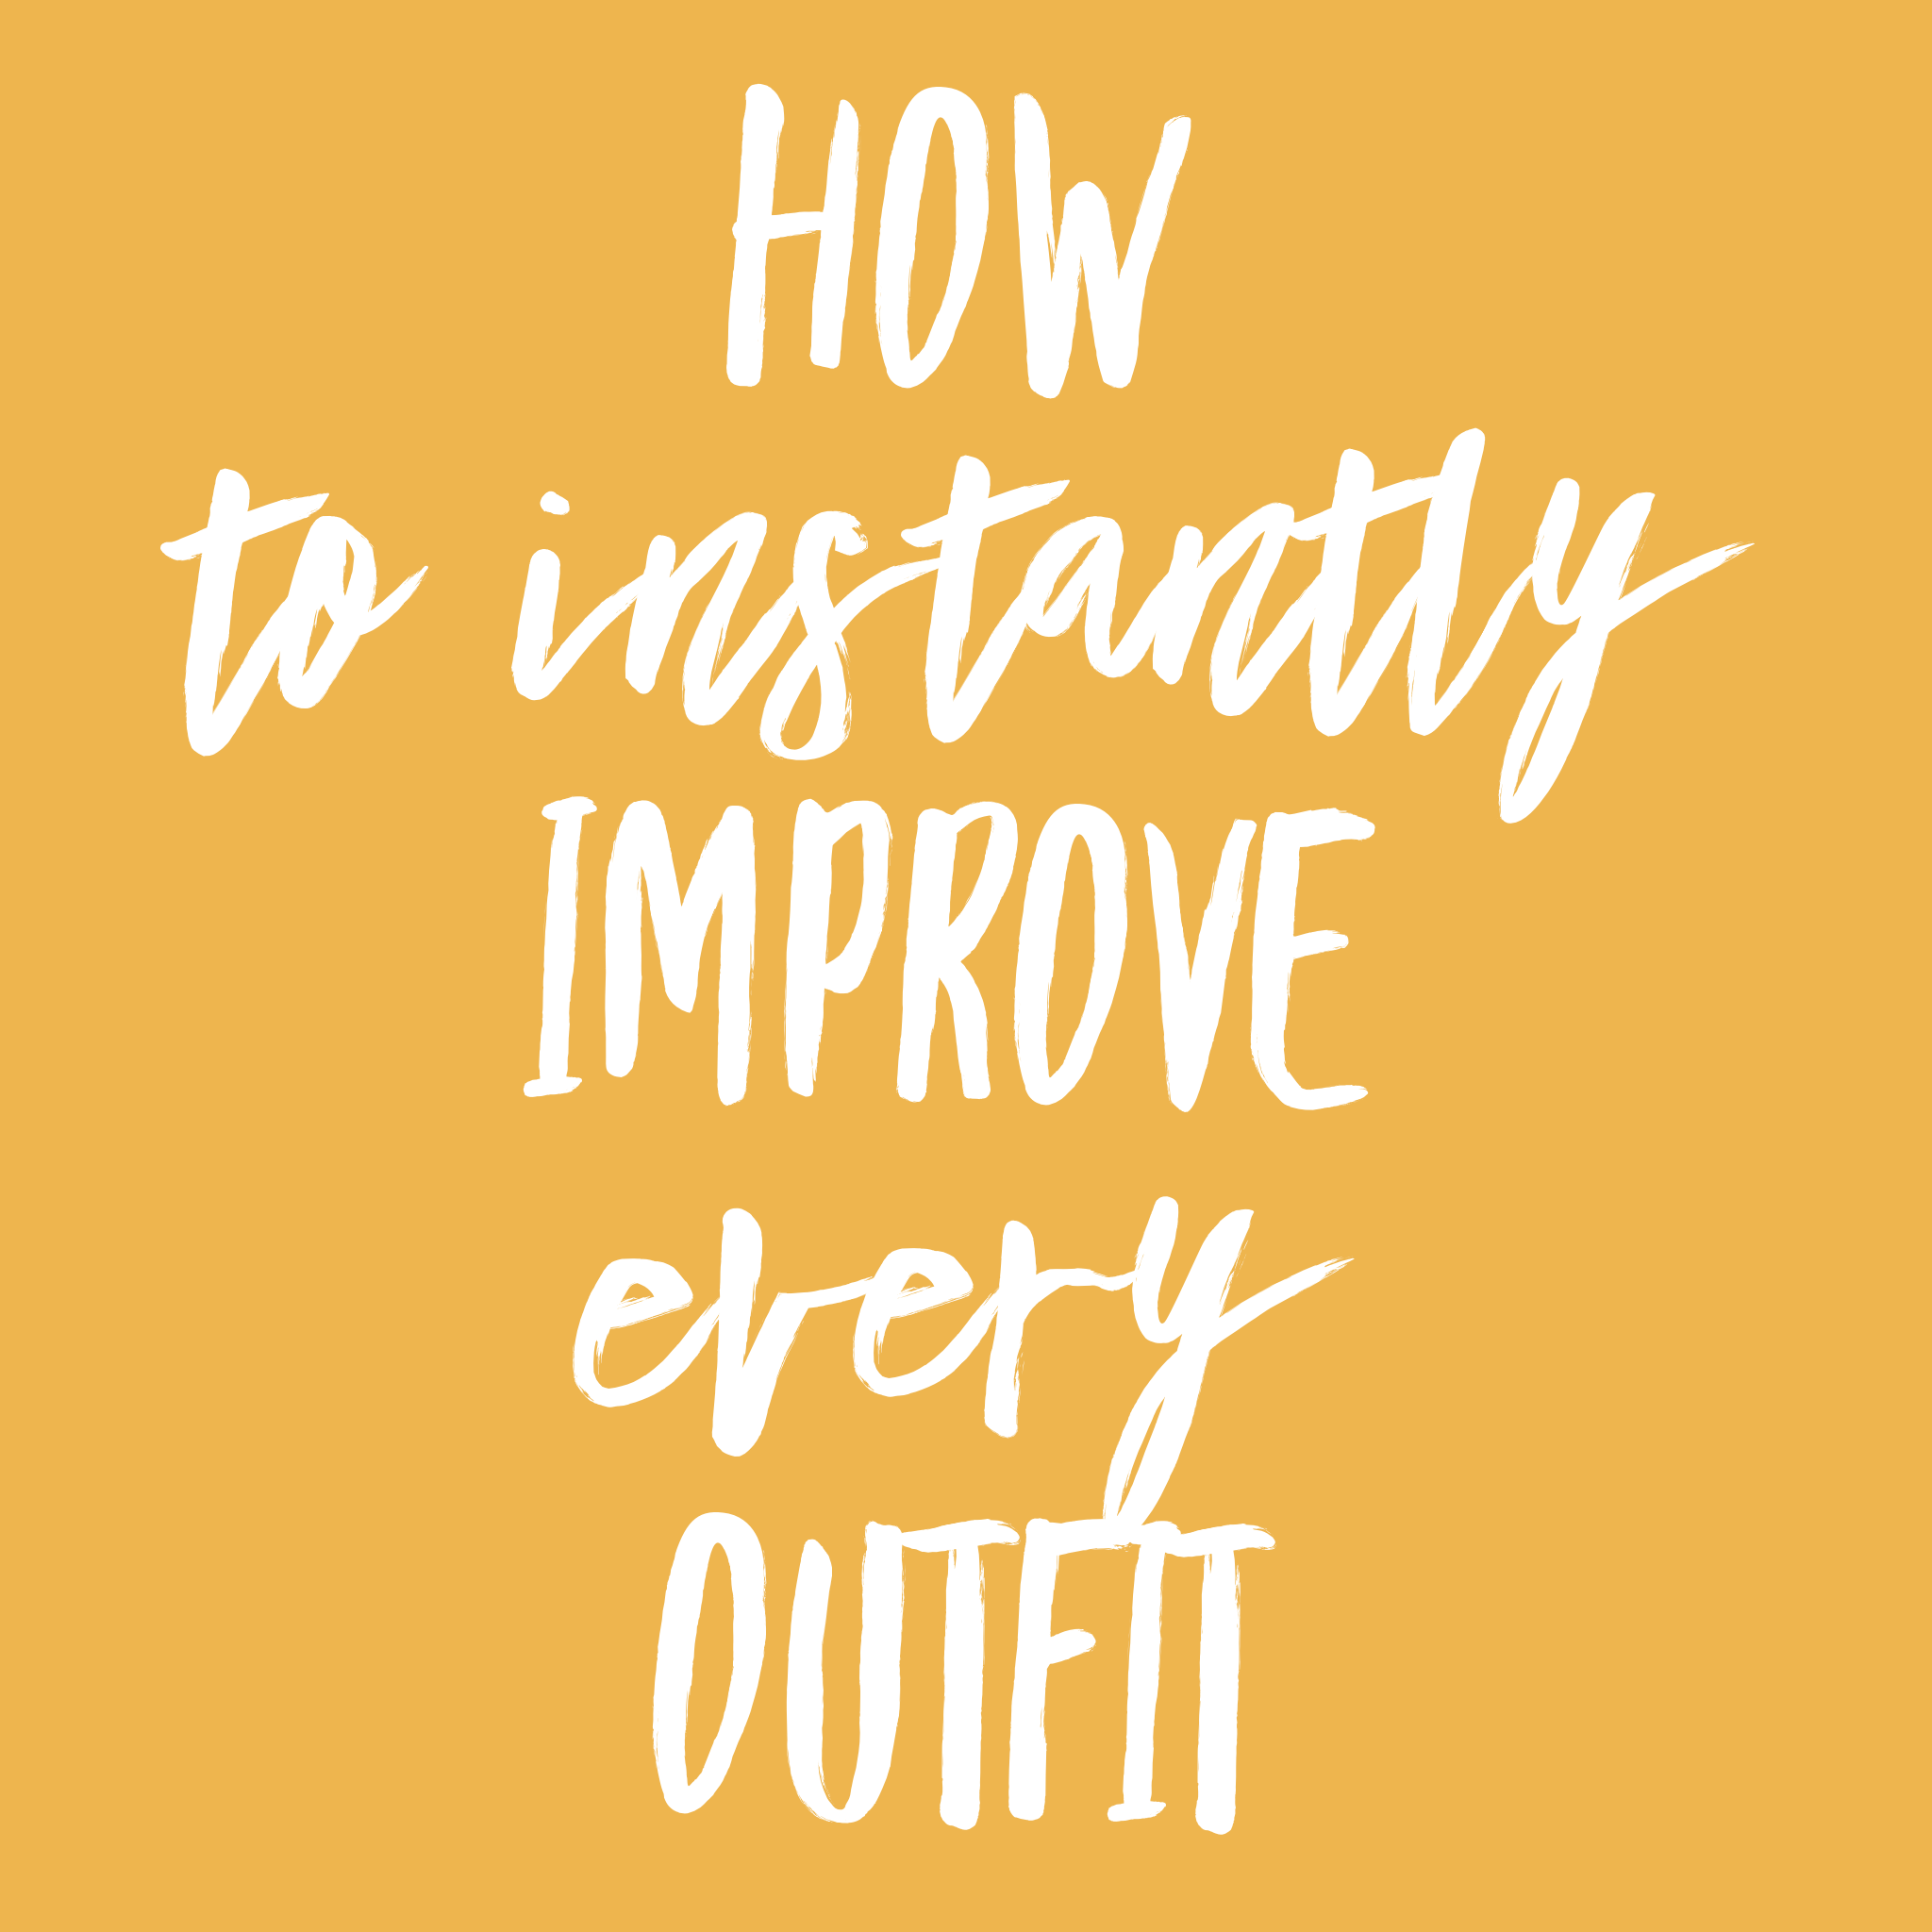 How to instantly improve every outfit